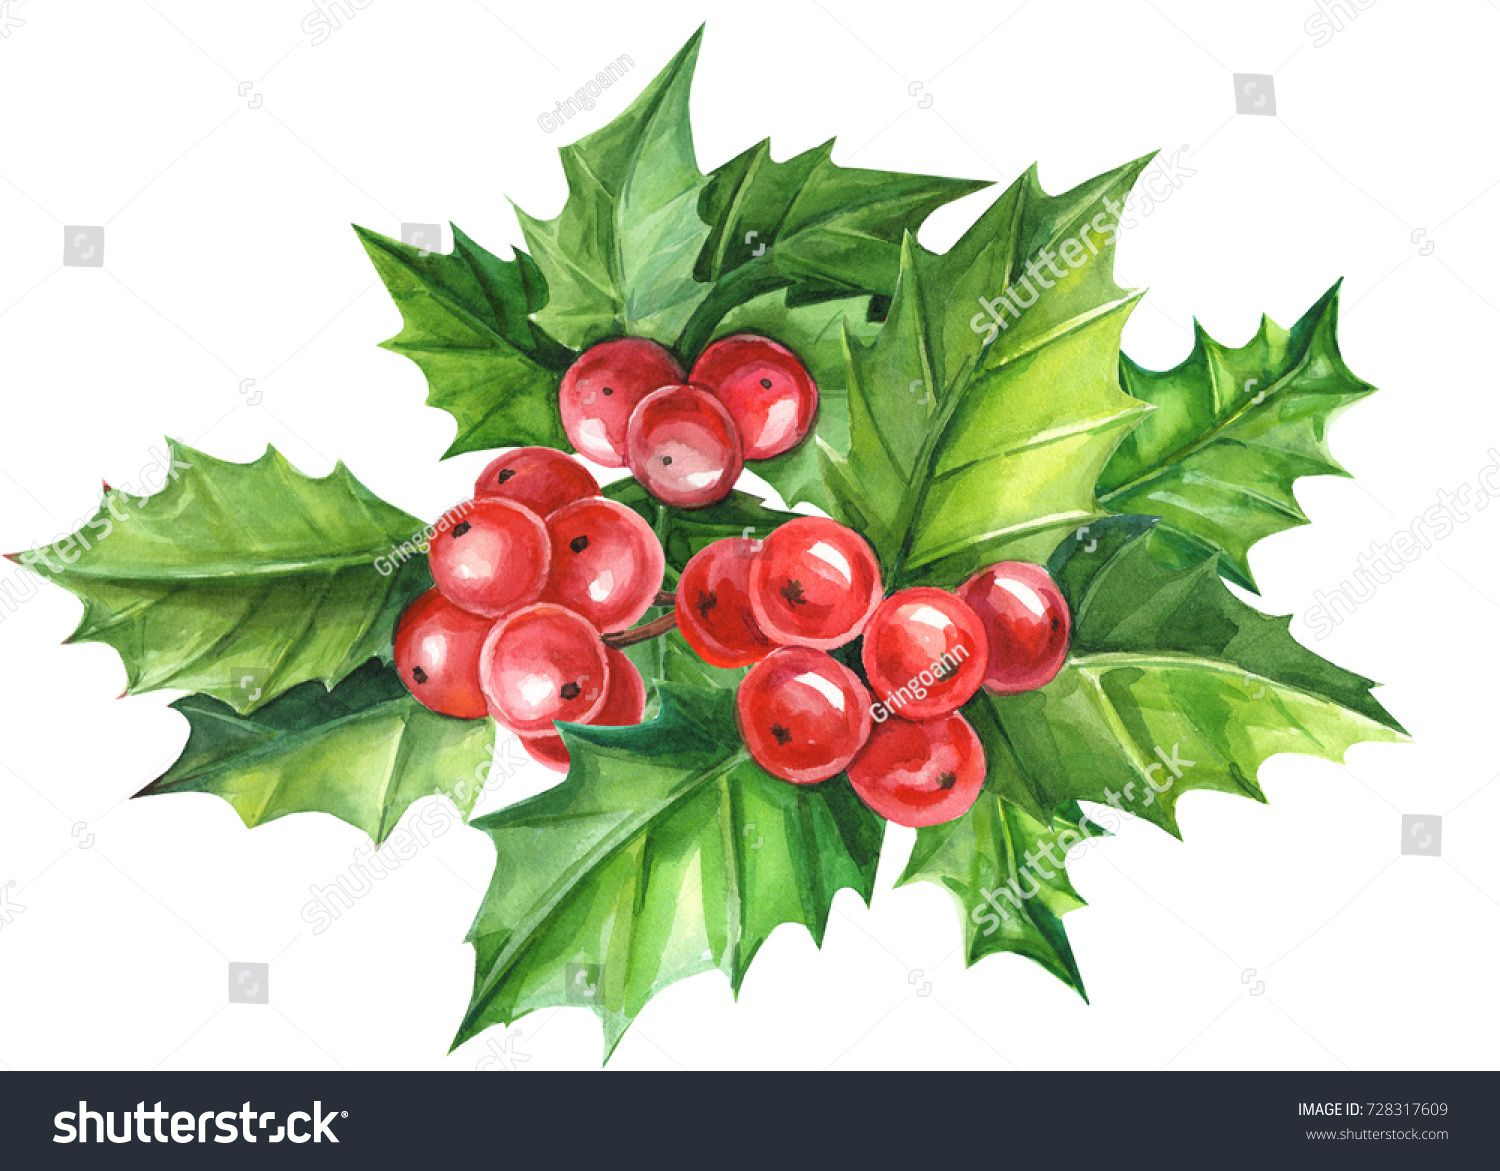 Christmas Holly Berries Watercolor Illustration Christmas